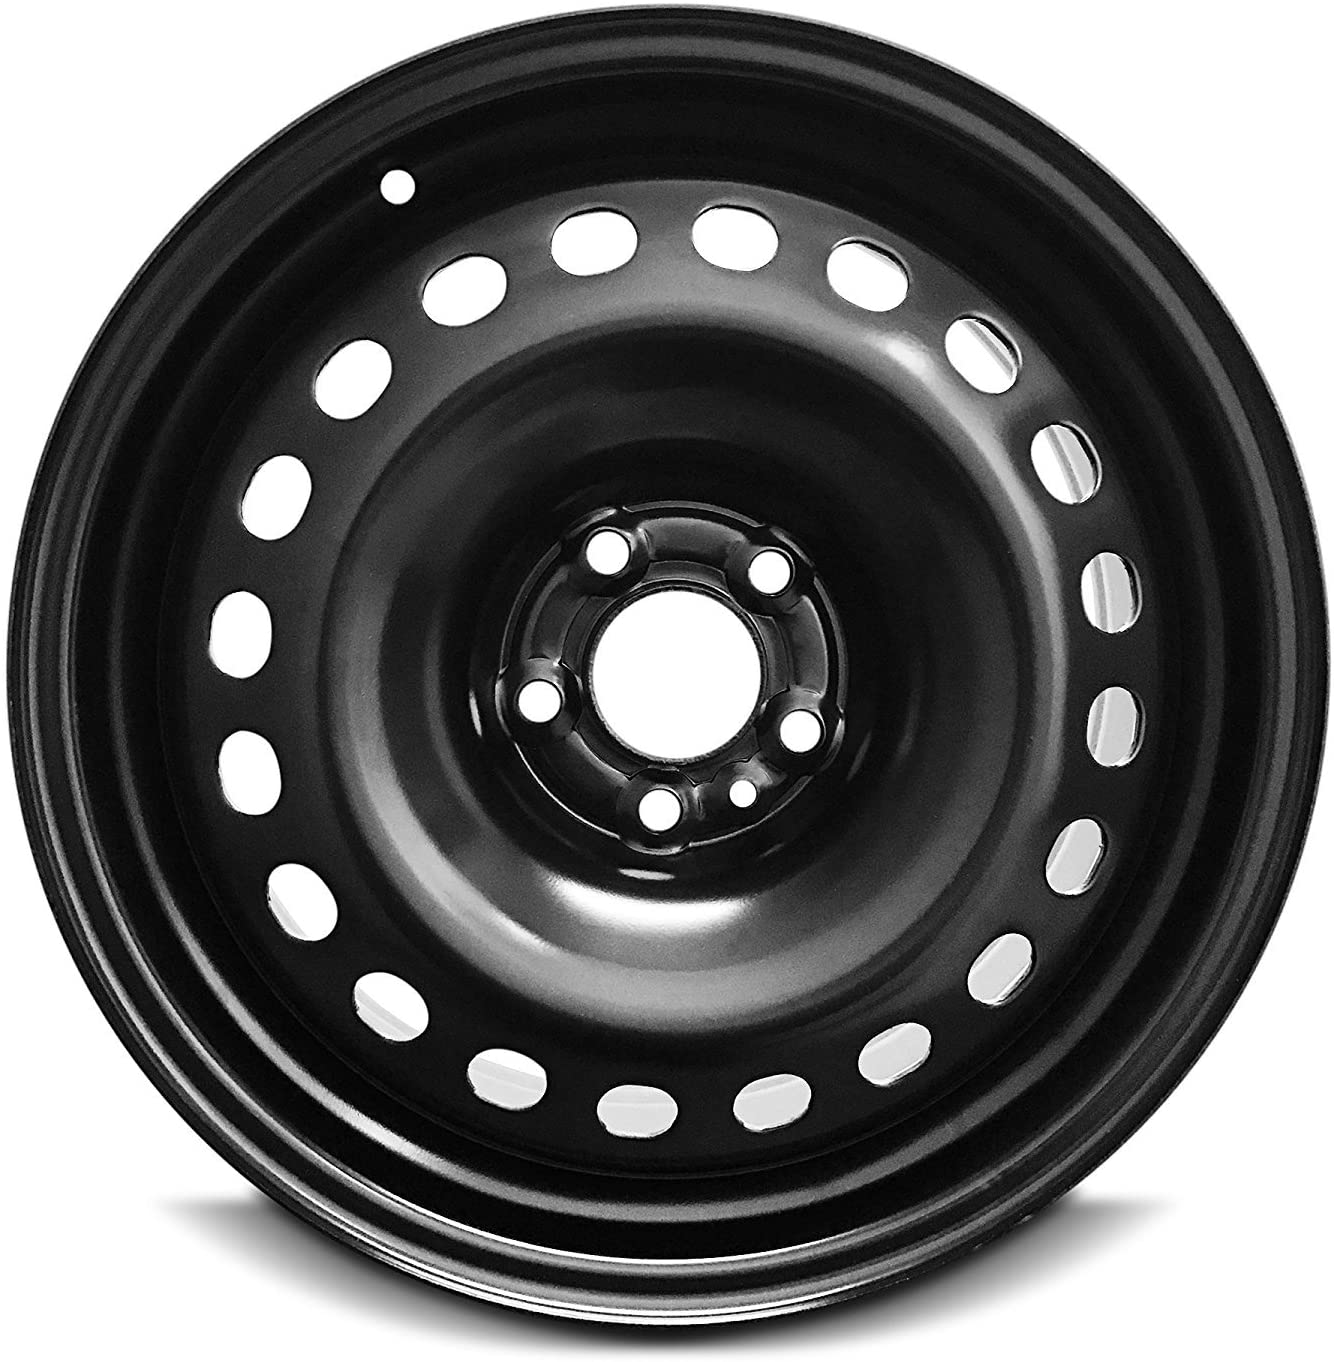 Road Ready Car Wheel For 2015-2017 Chrysler 200 17 Inch 5 Lug Black Steel Rim Fits R17 Tire - Exact OEM Replacement - Full-Size Spare